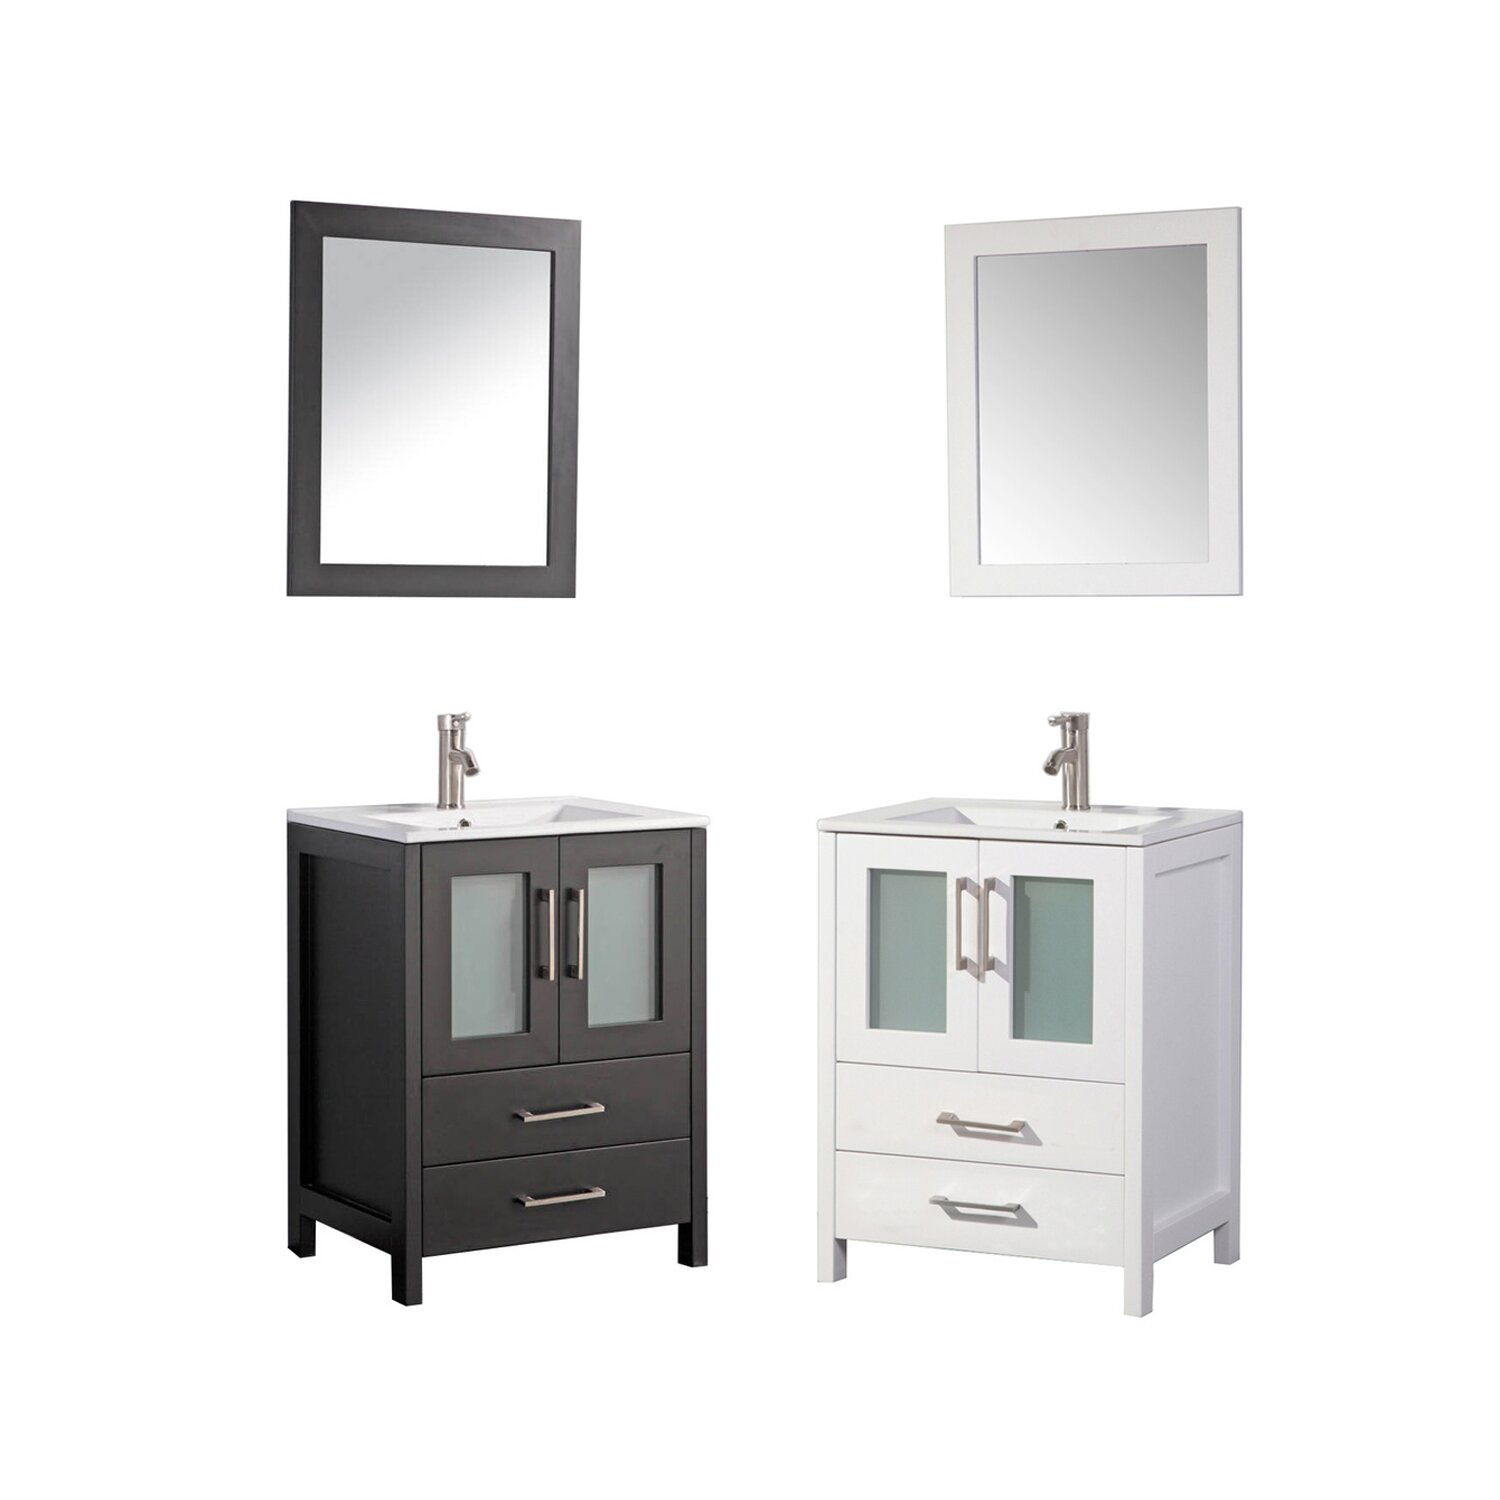 Mtdvanities argentina 24 single sink bathroom vanity set with mirror reviews wayfair Bathroom sink and vanity sets